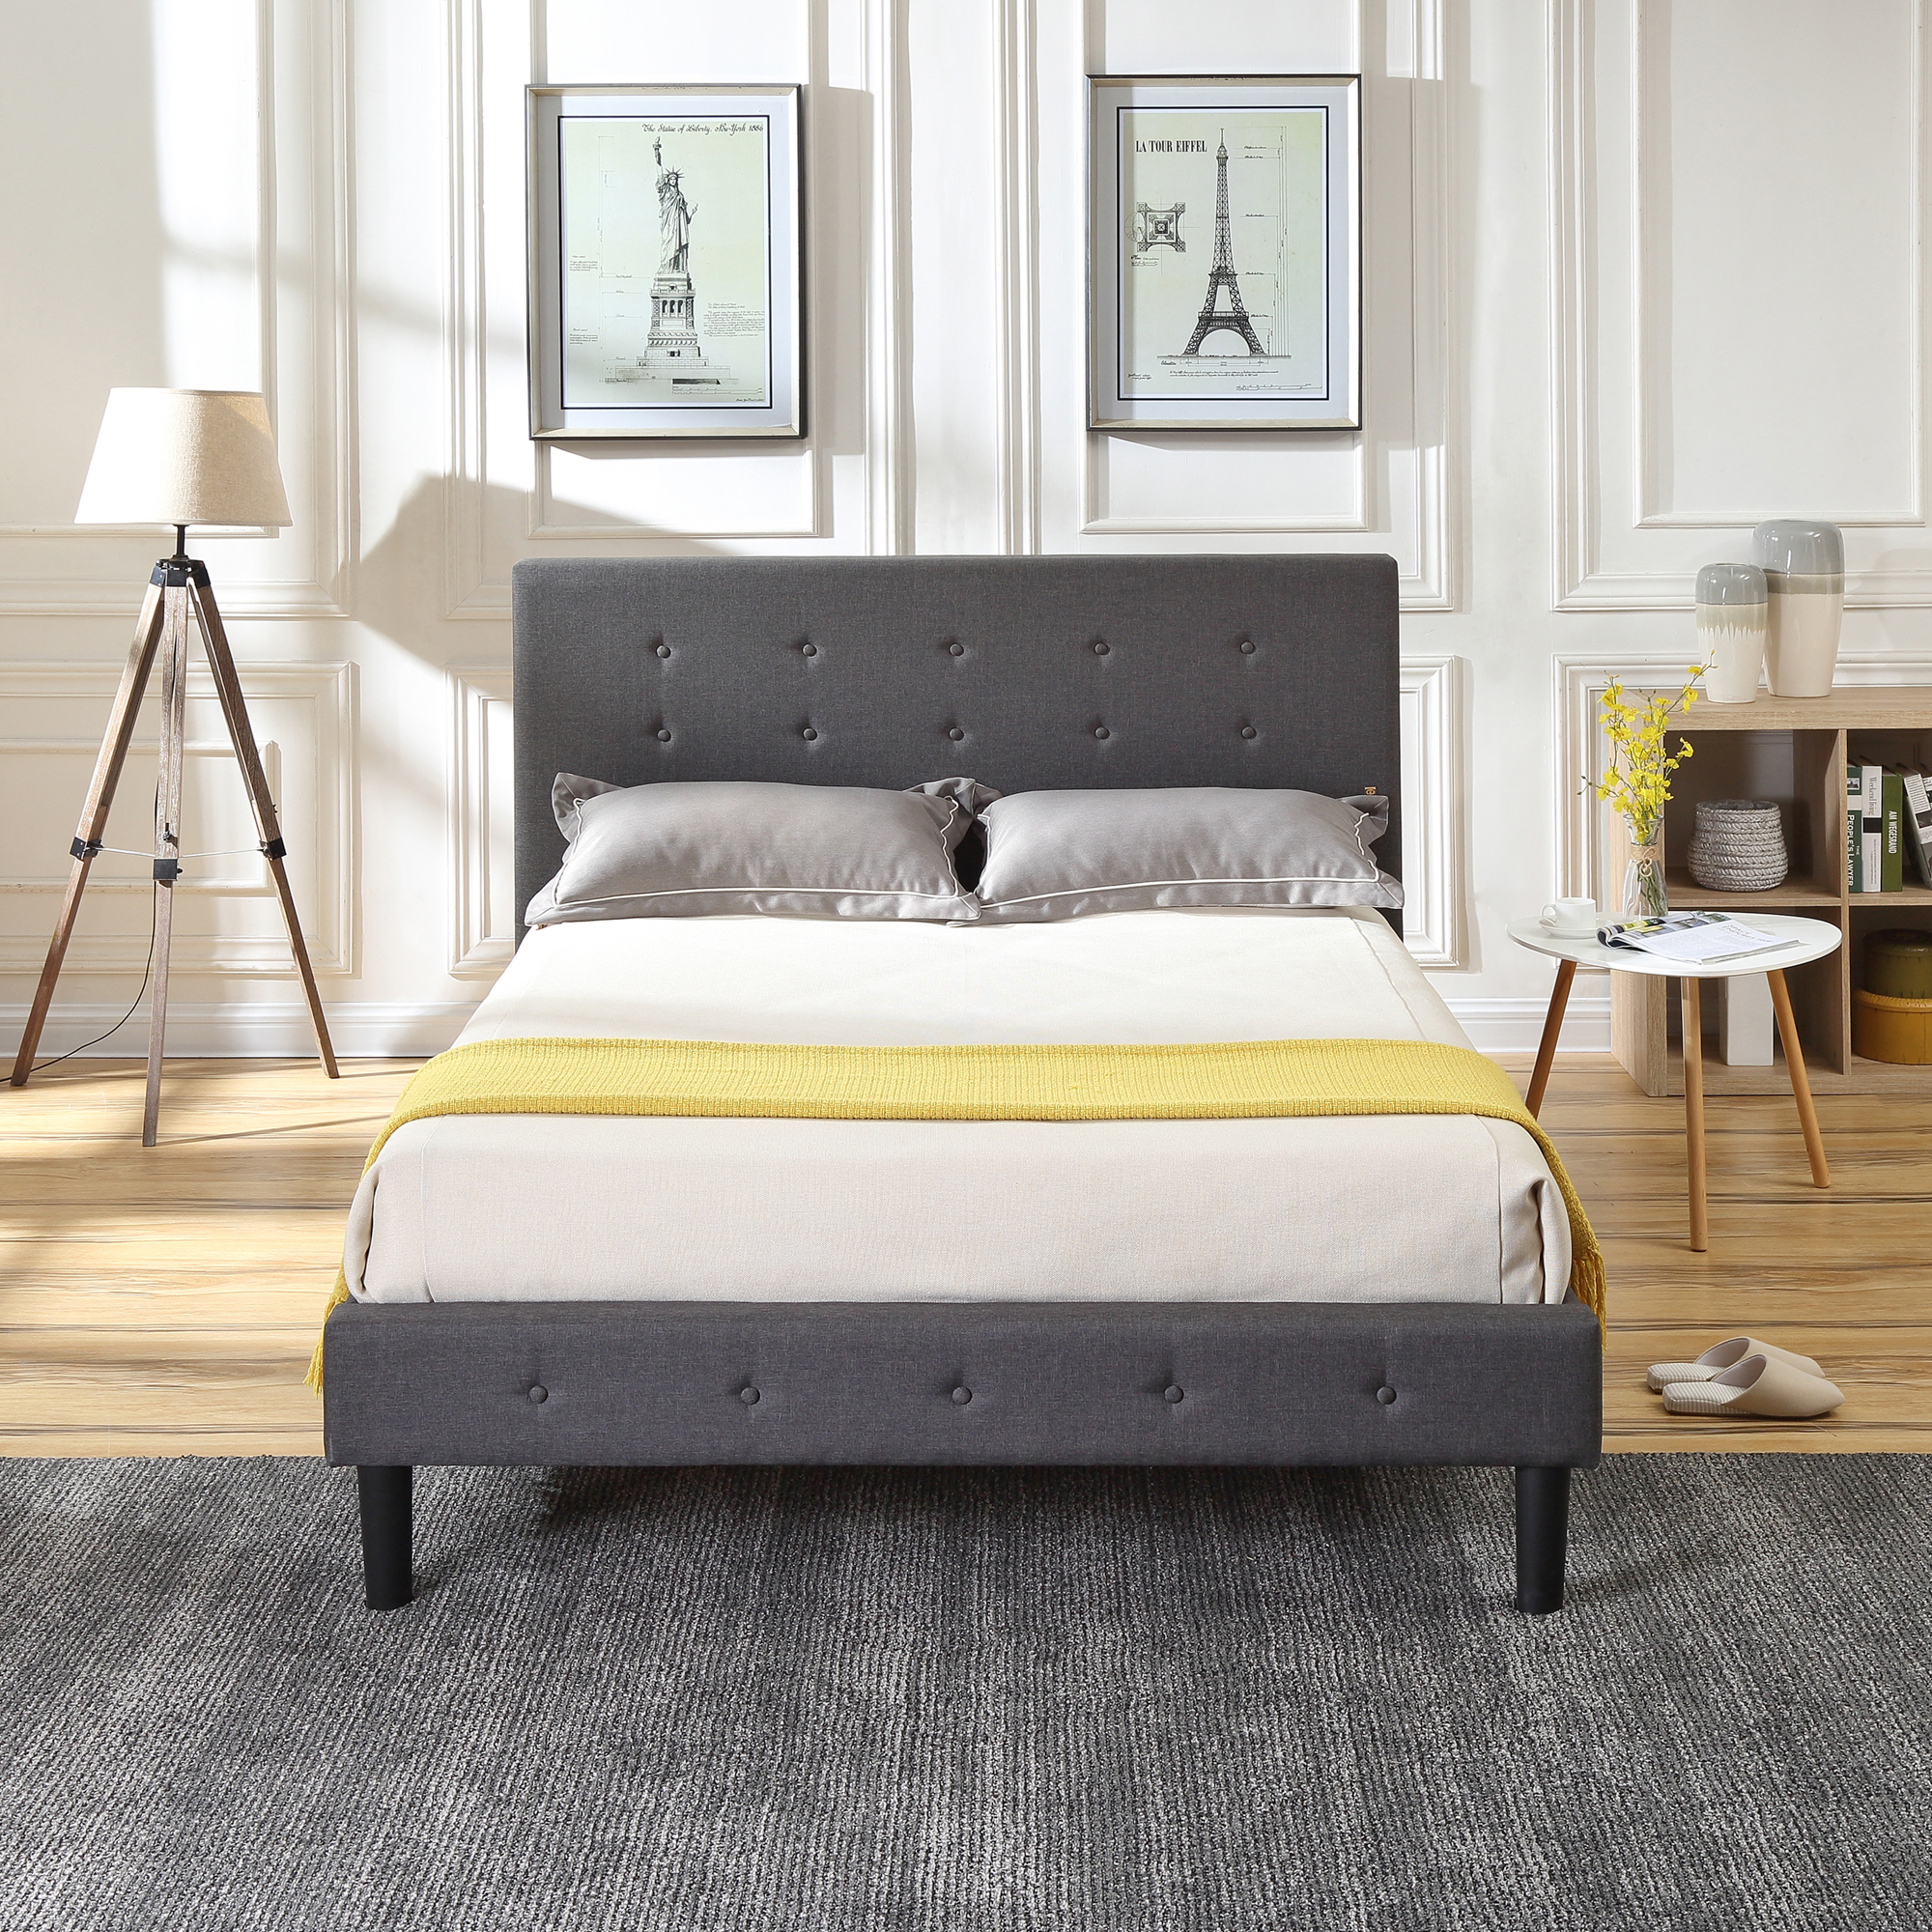 Modern Sleep Cambridge Upholstered Platform Bed | Headboard and Metal Frame with Wood Slat Support | Grey, Multiple Sizes